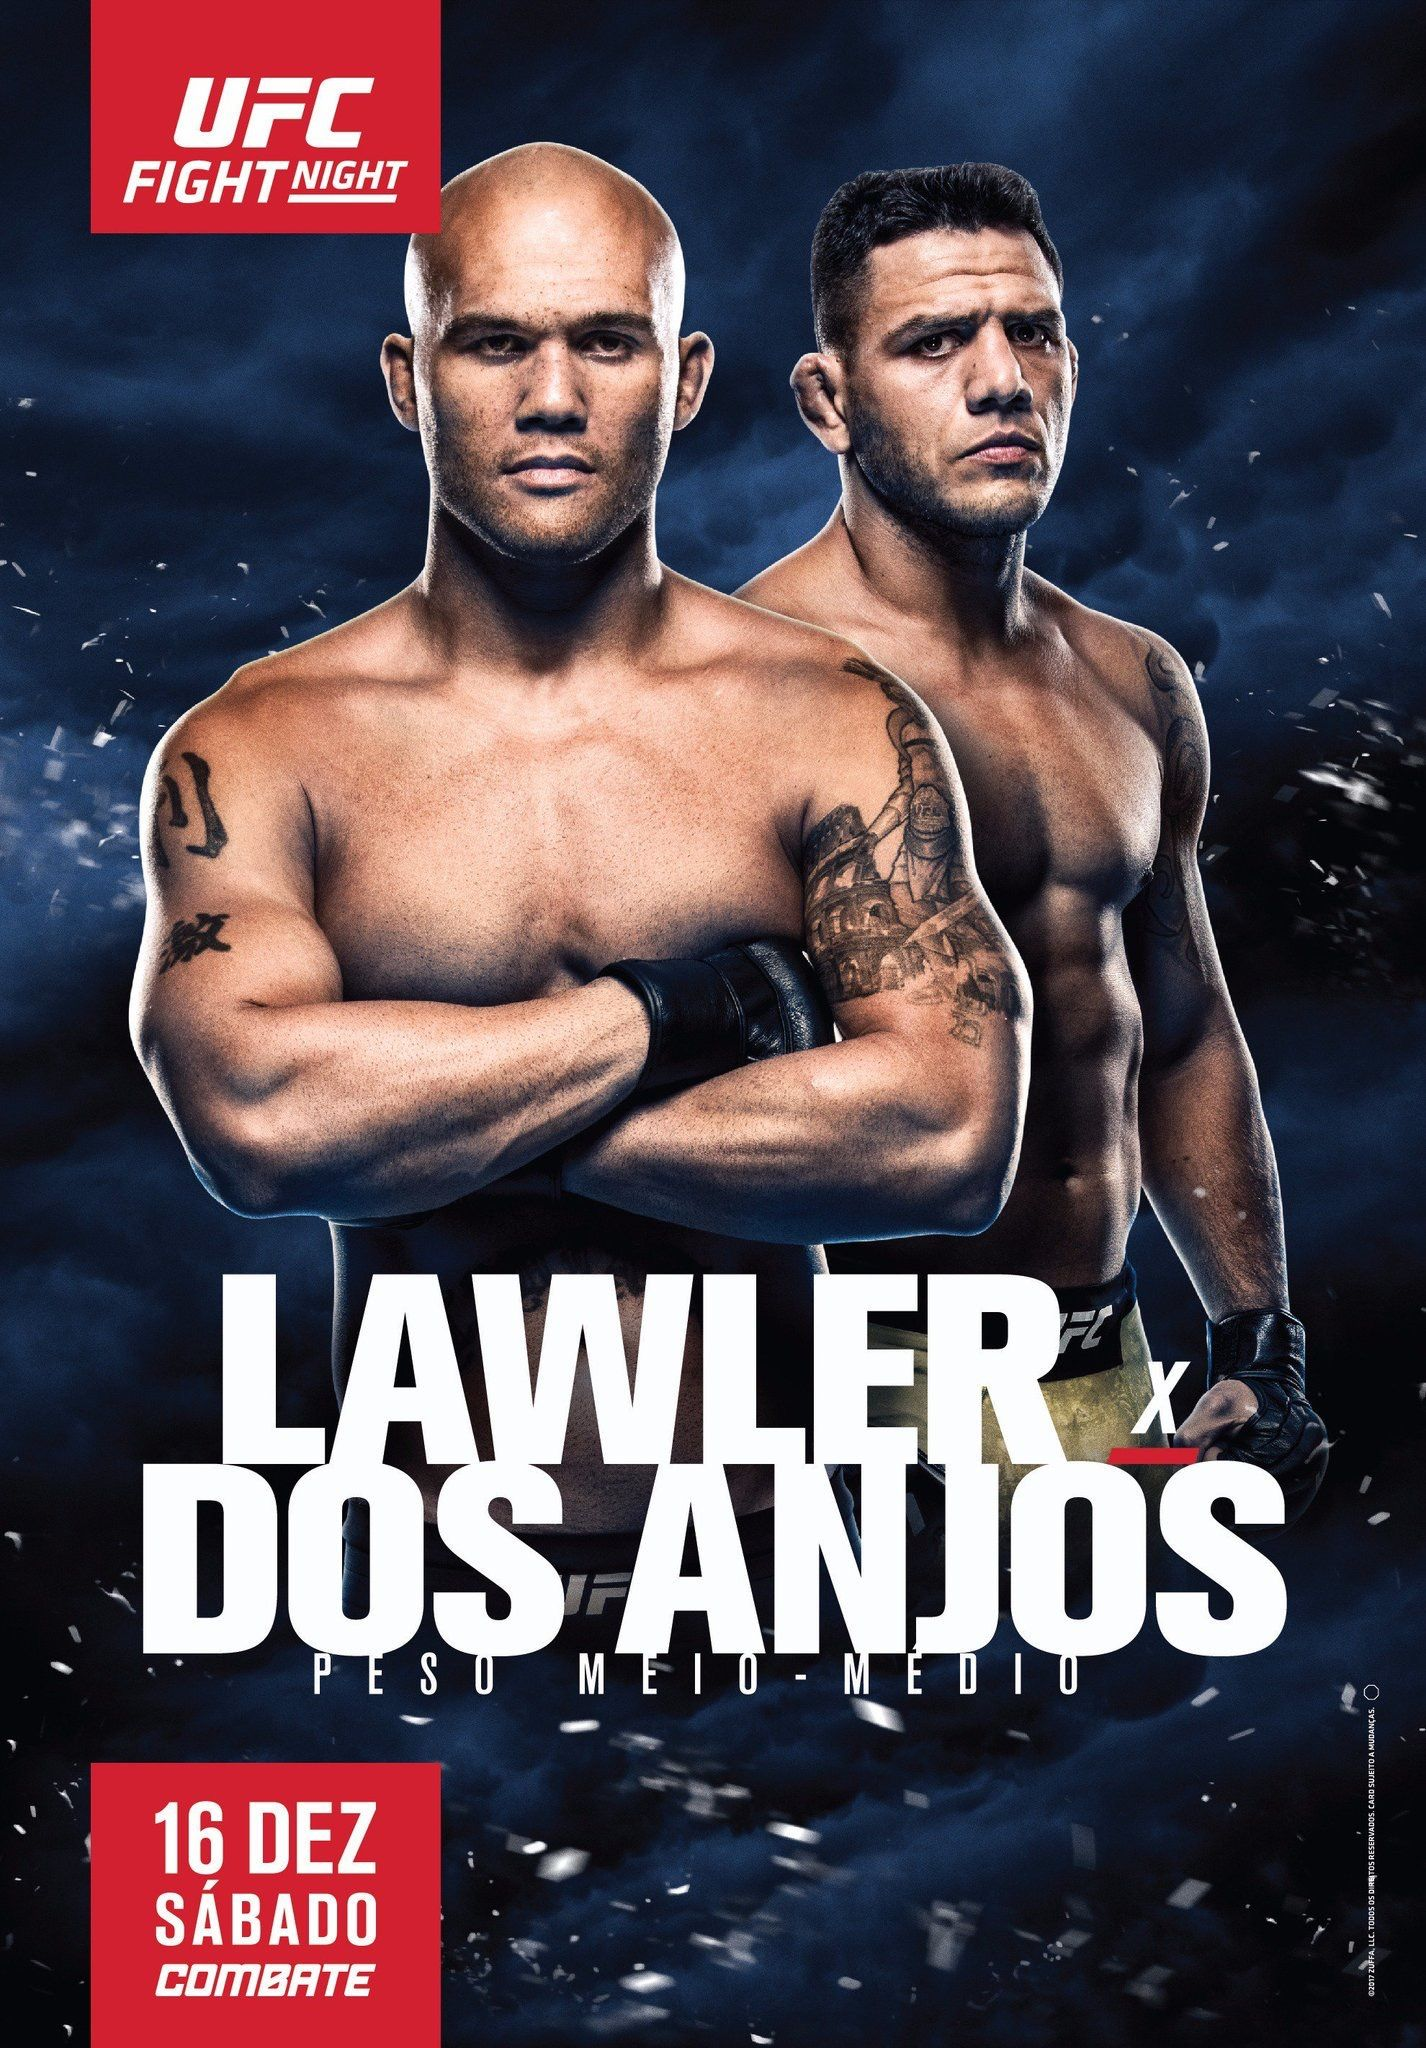 Pin By Angel Melendez On Mma Posters Ufc Poster Ufc Ufc Fight Night